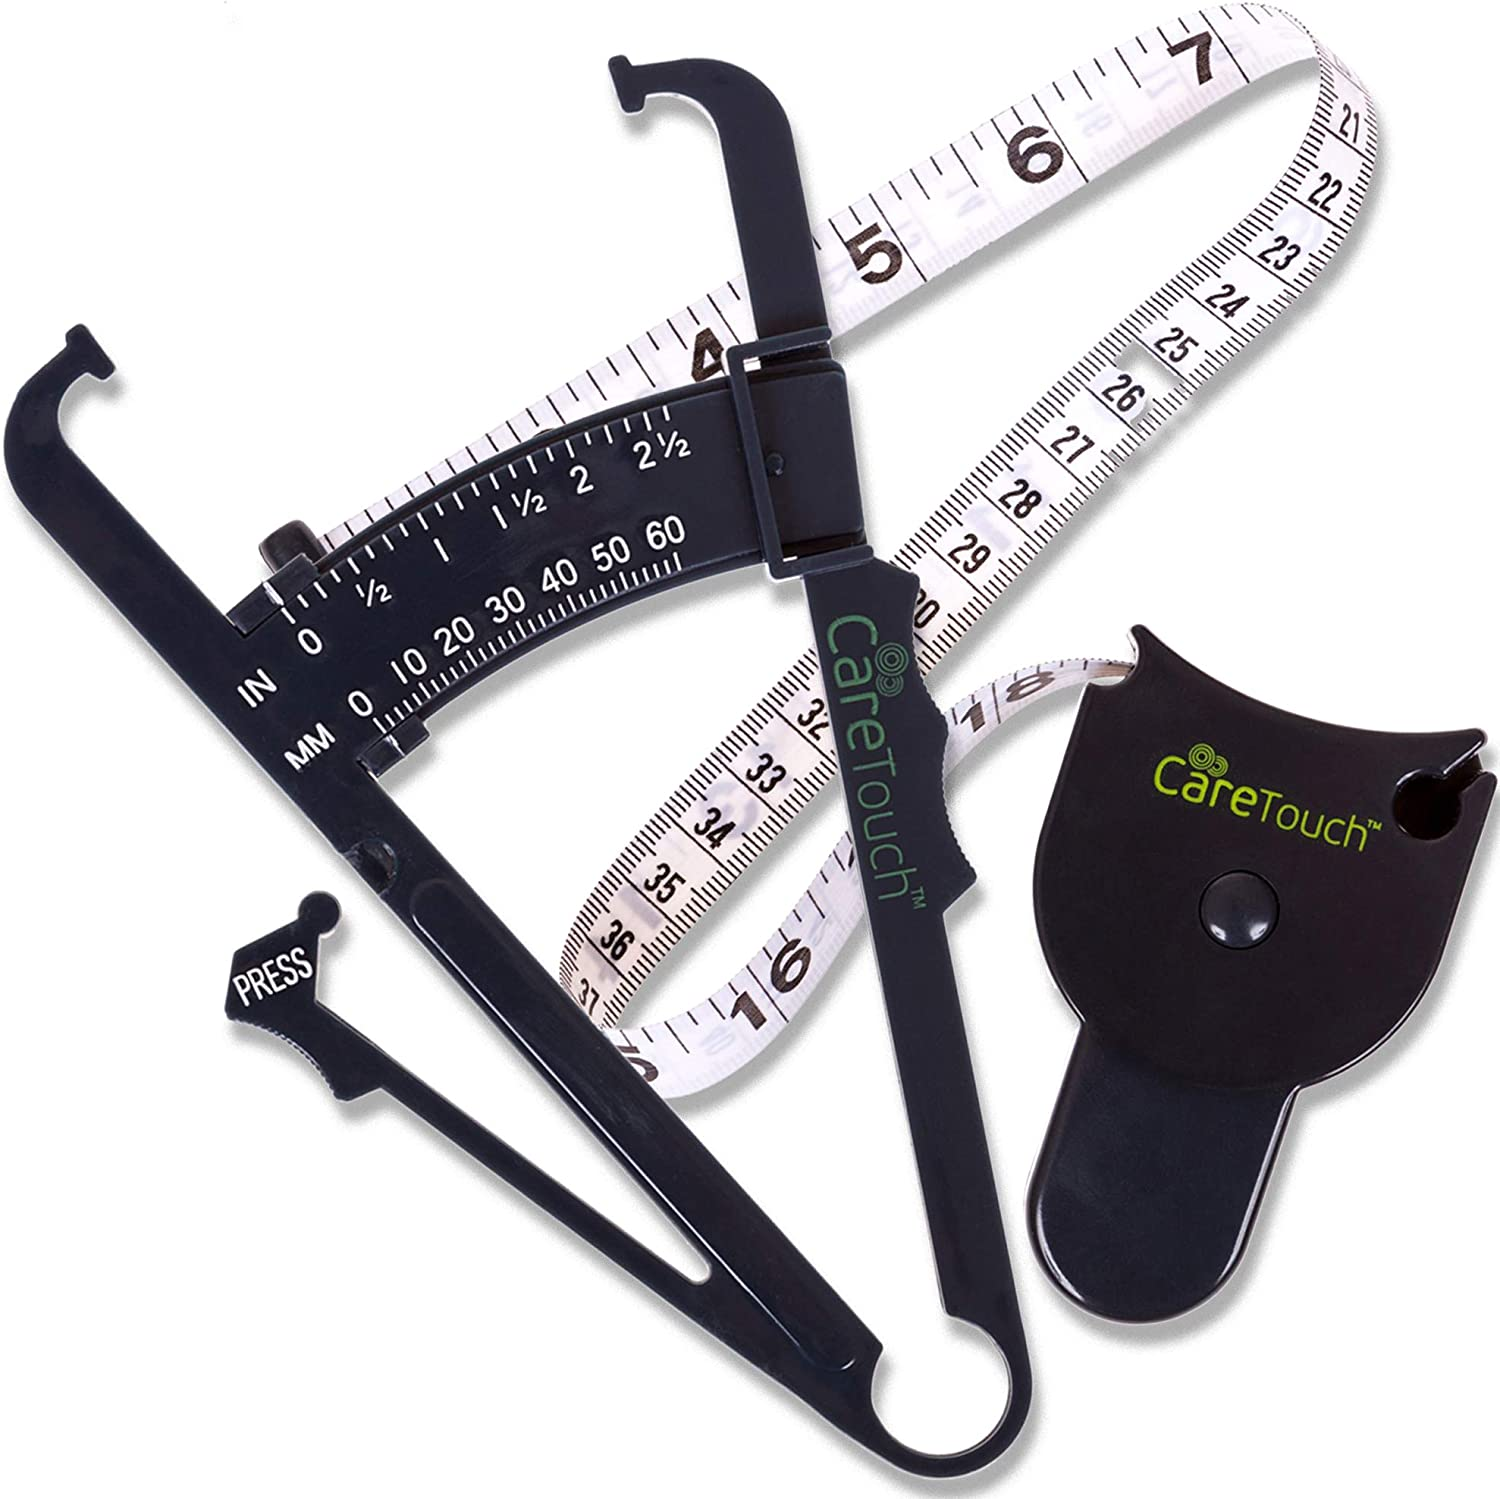 Care Purchase Touch Skinfold Body Fat Measure Tape Set Caliper Included Max 51% OFF